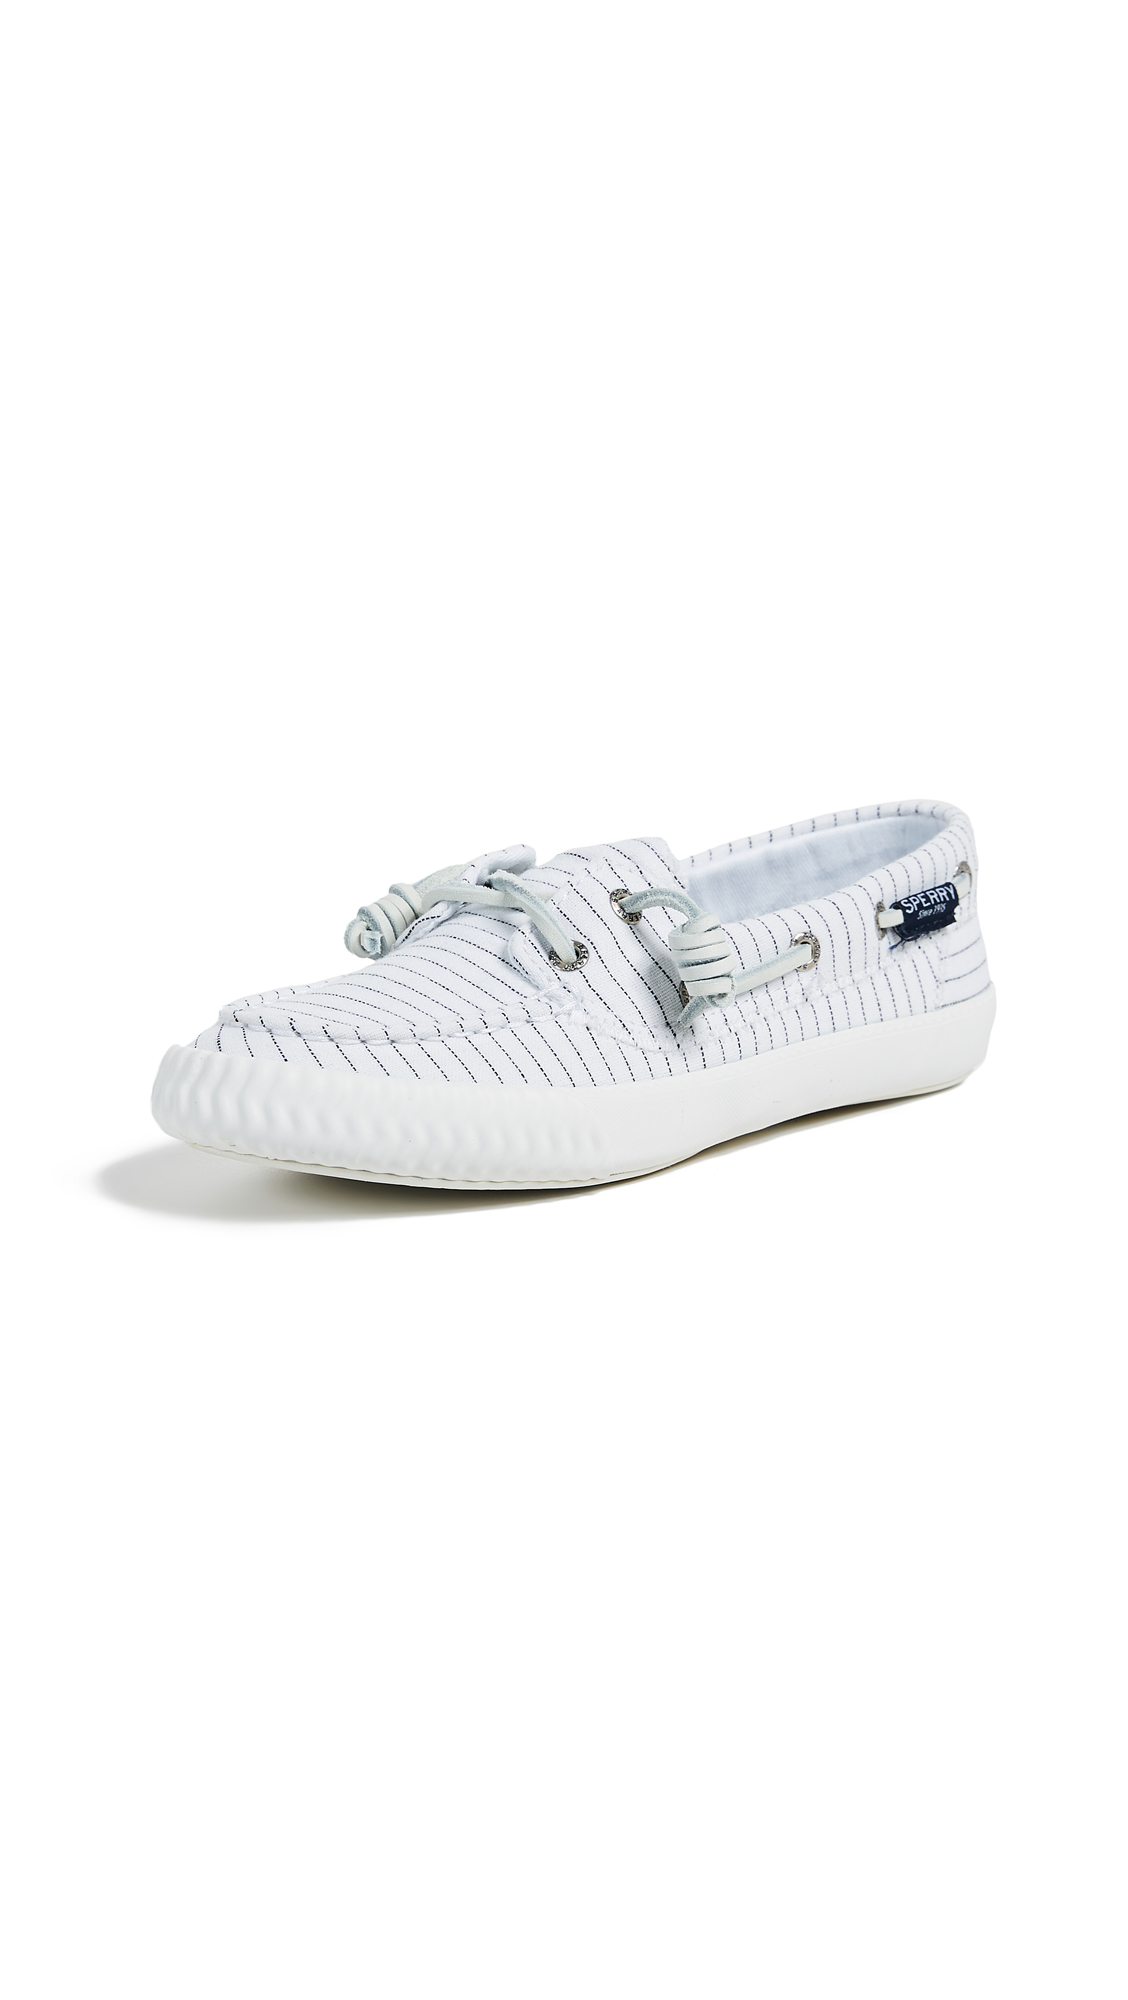 Sperry Sayel Away Pinstripe Boat Shoes - White/Black